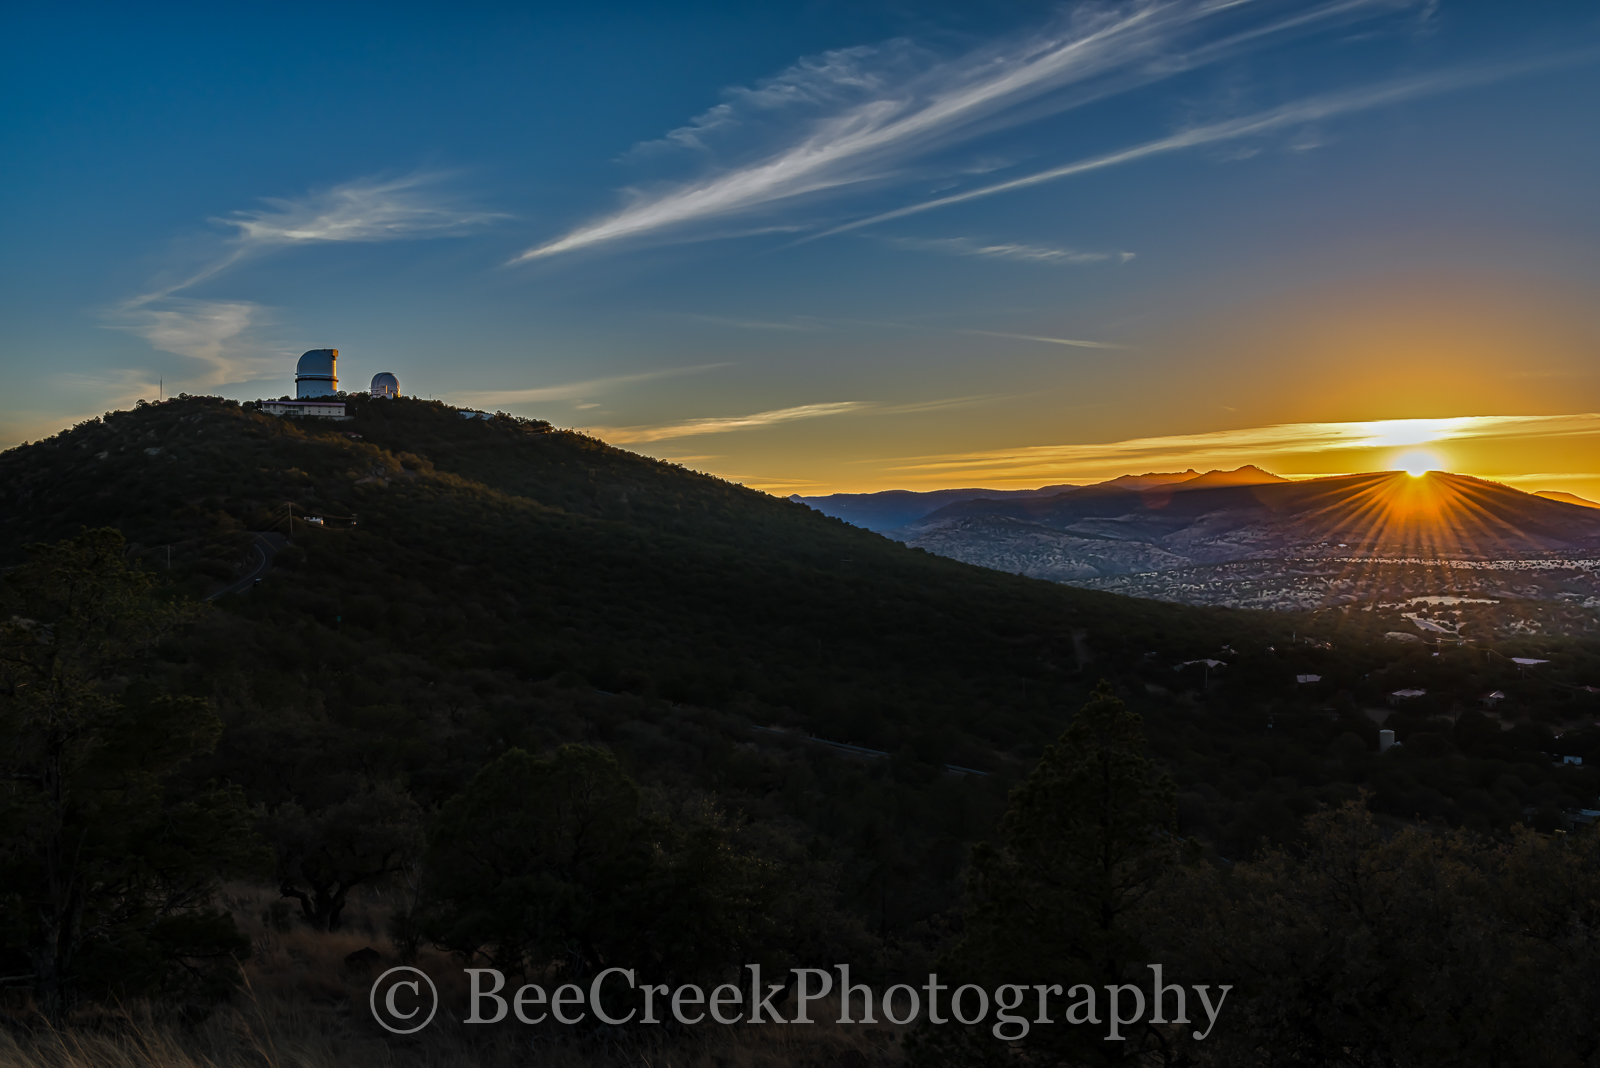 Astronomy, Davis mountains, Fort Davis, McDonald Observatory, planetary systems, sunset, west texas, photo